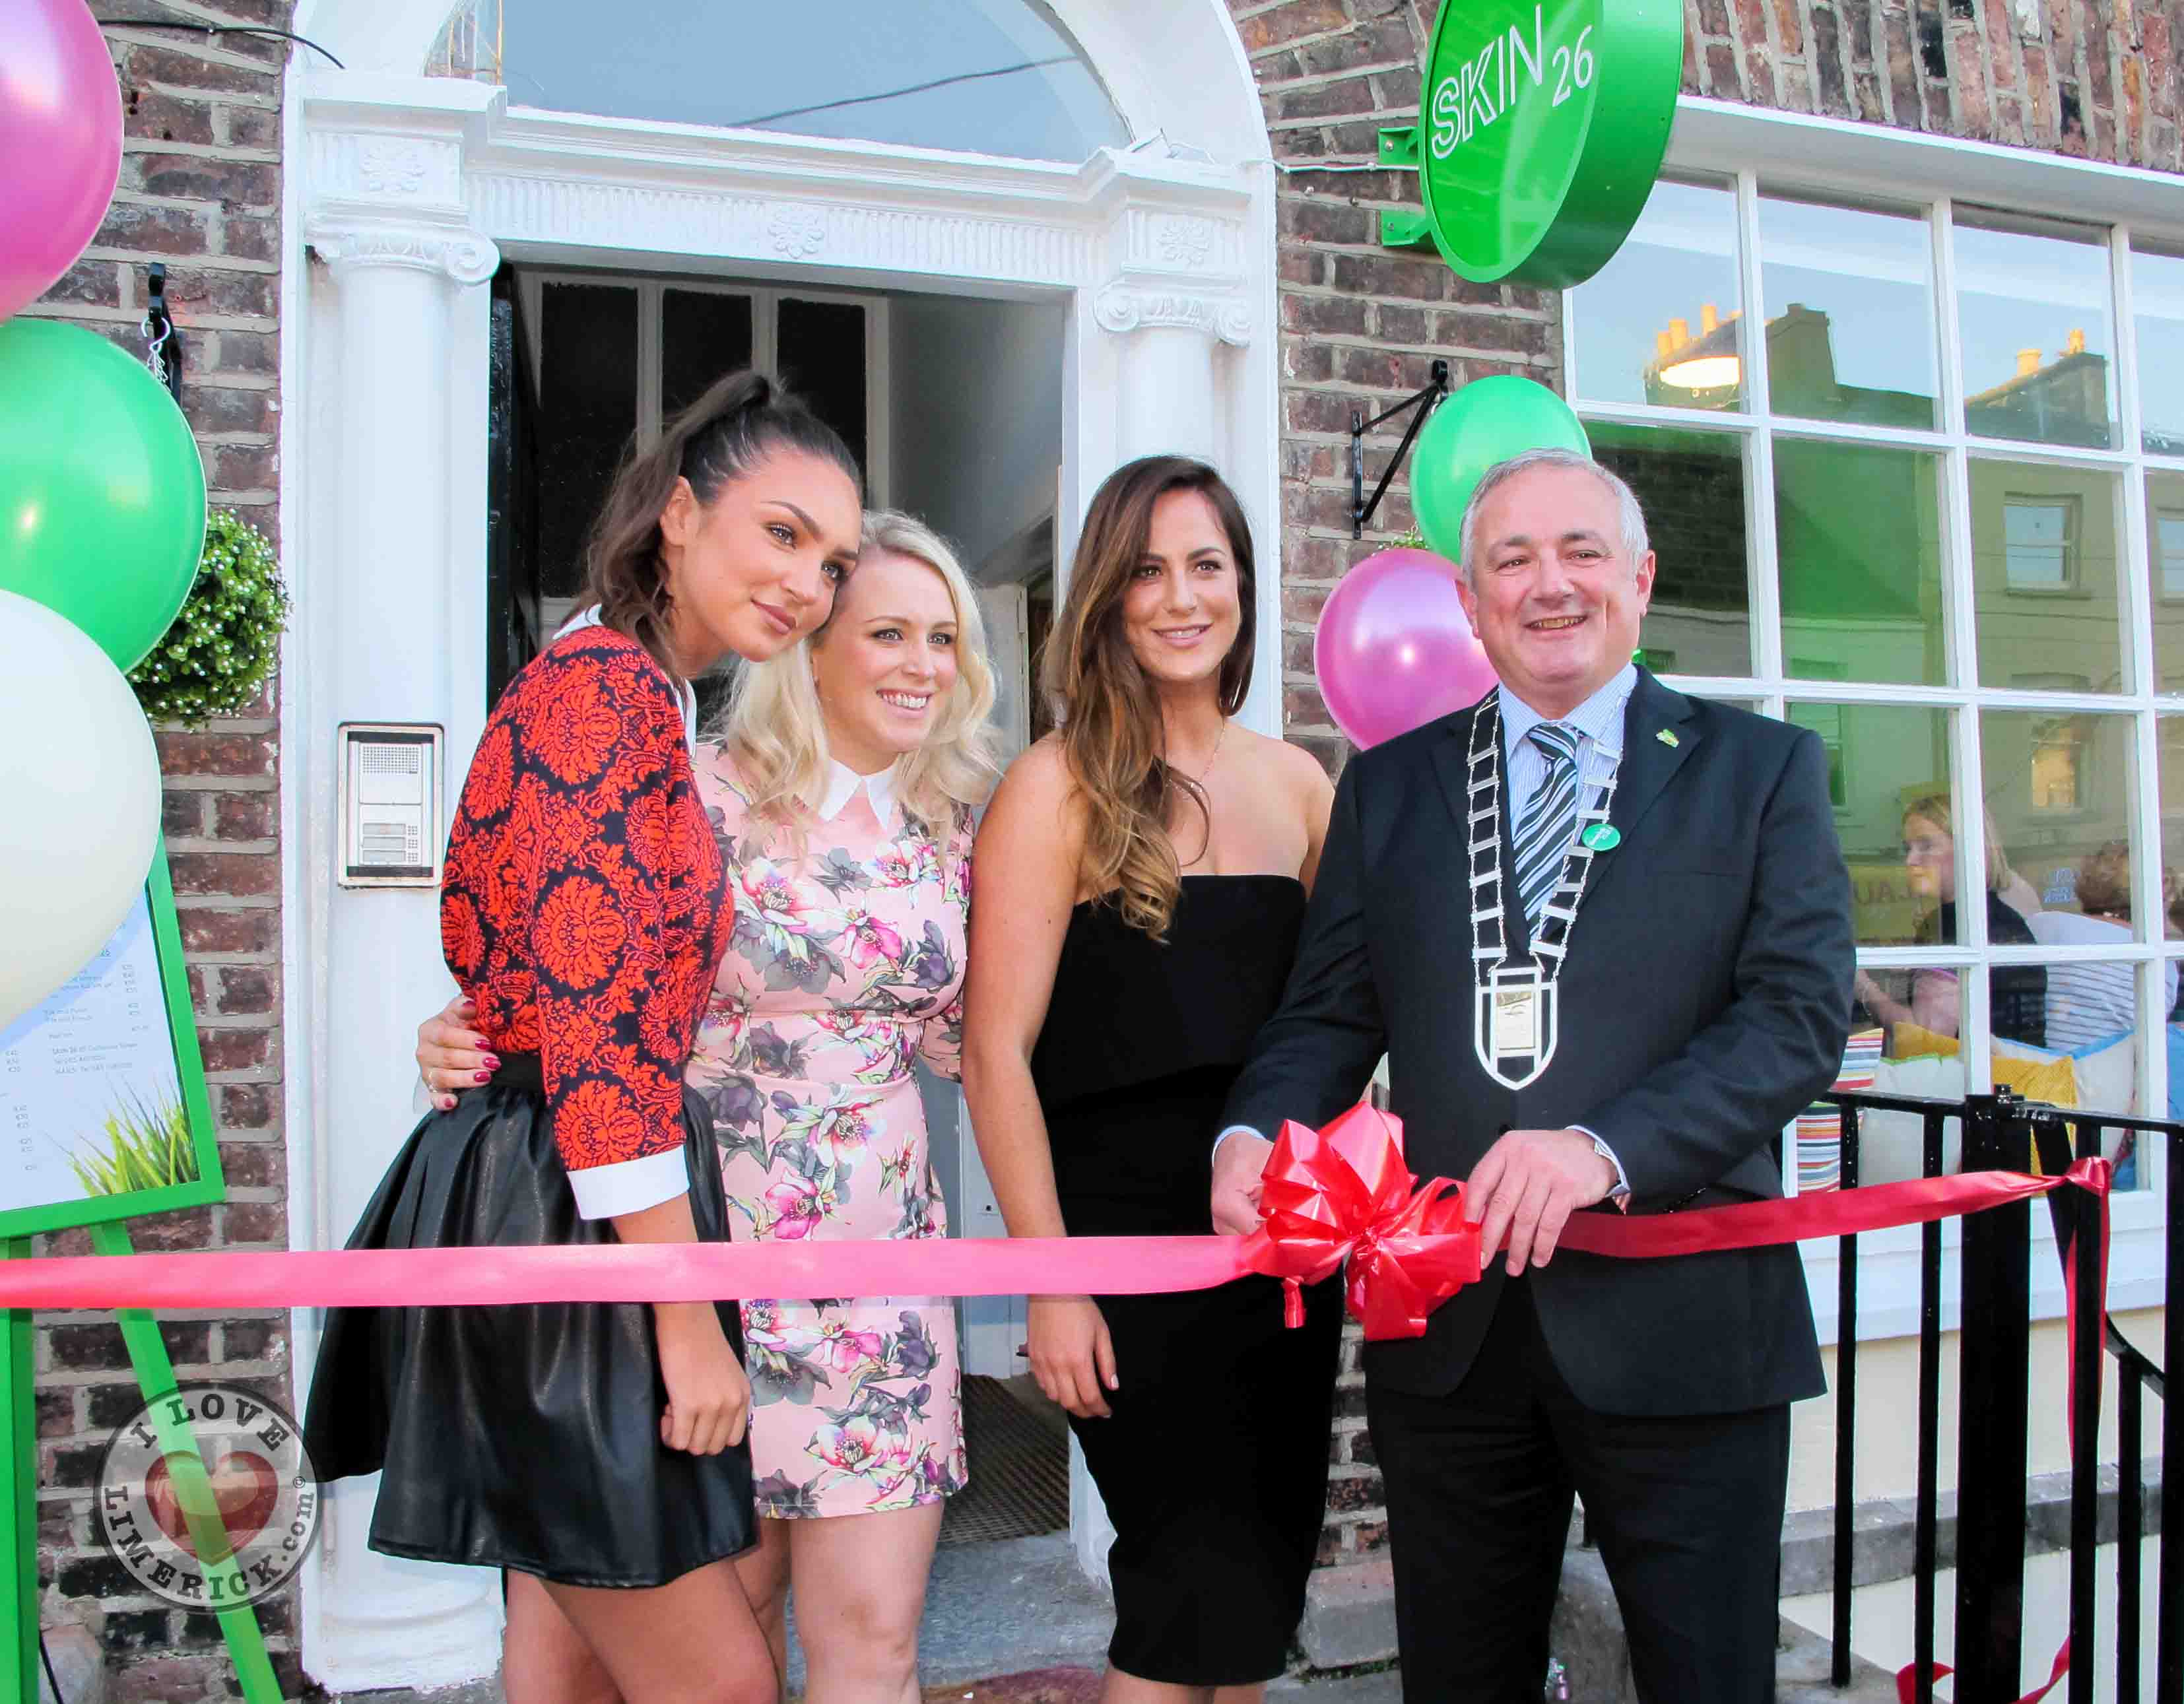 Skin26 opens its doors to the public at its launch on Catherine St